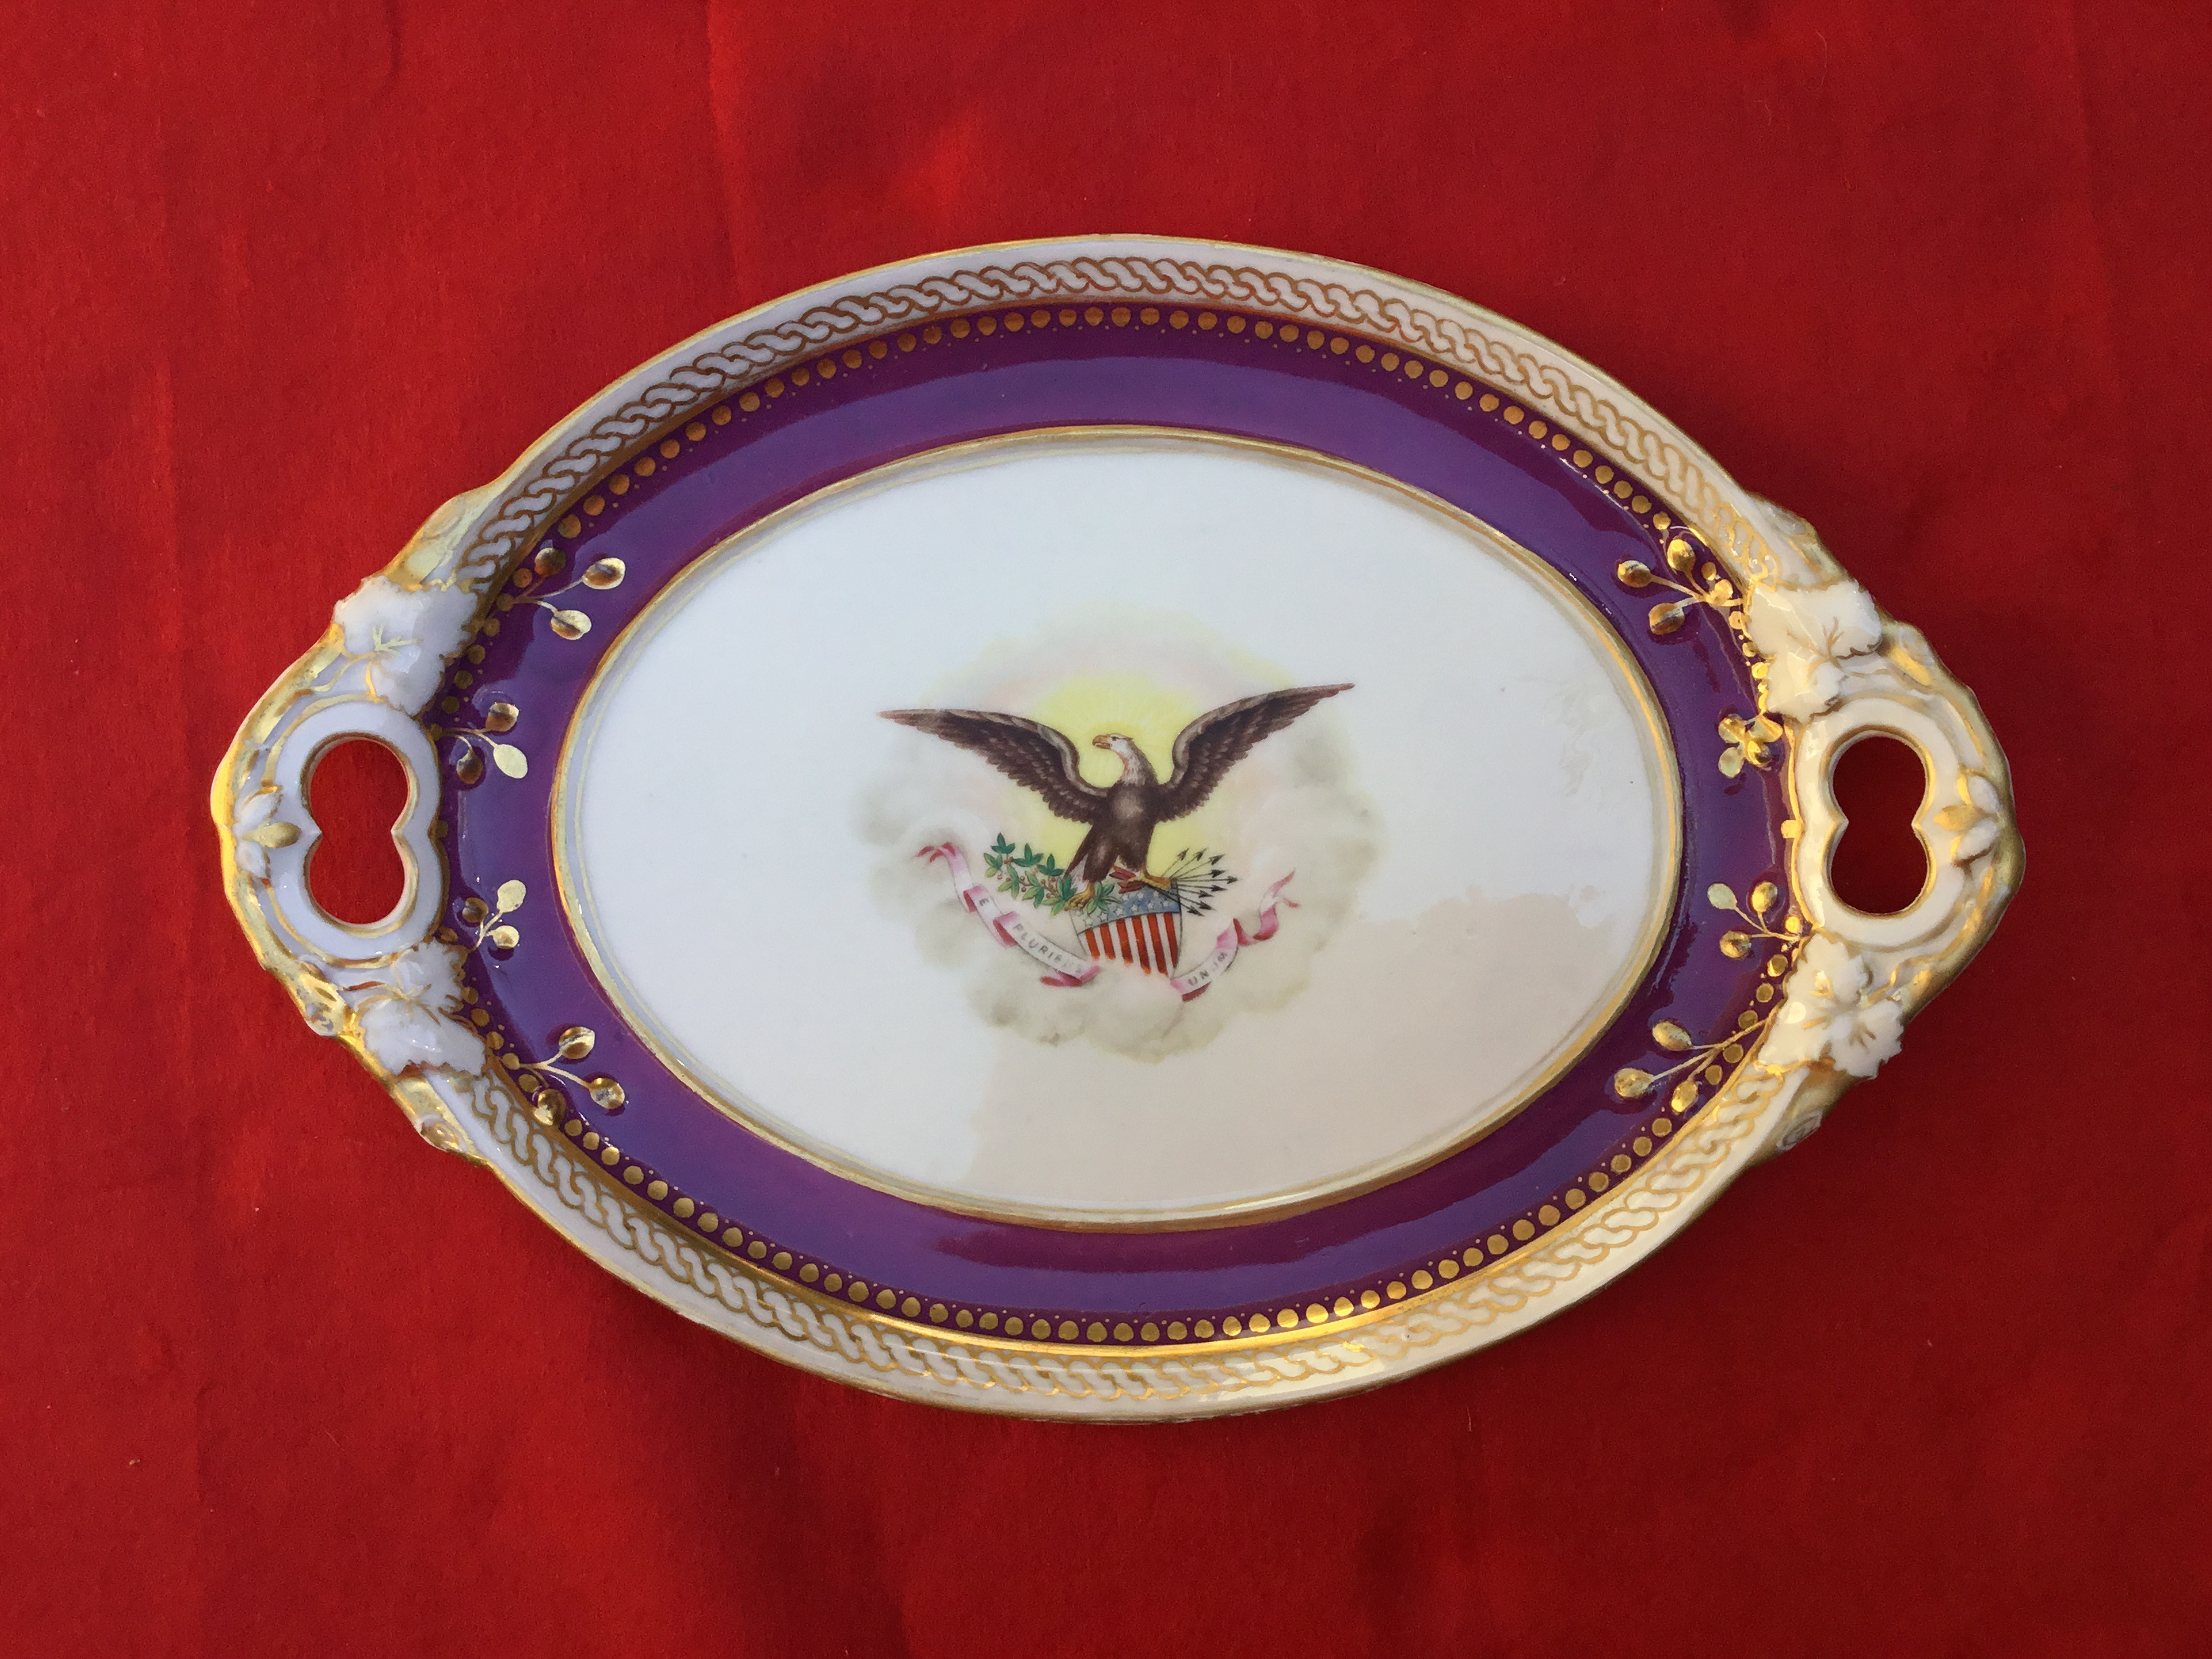 ABRAHAM LINCOLN OFFICIAL WHITE HOUSE CHINA PLATTER